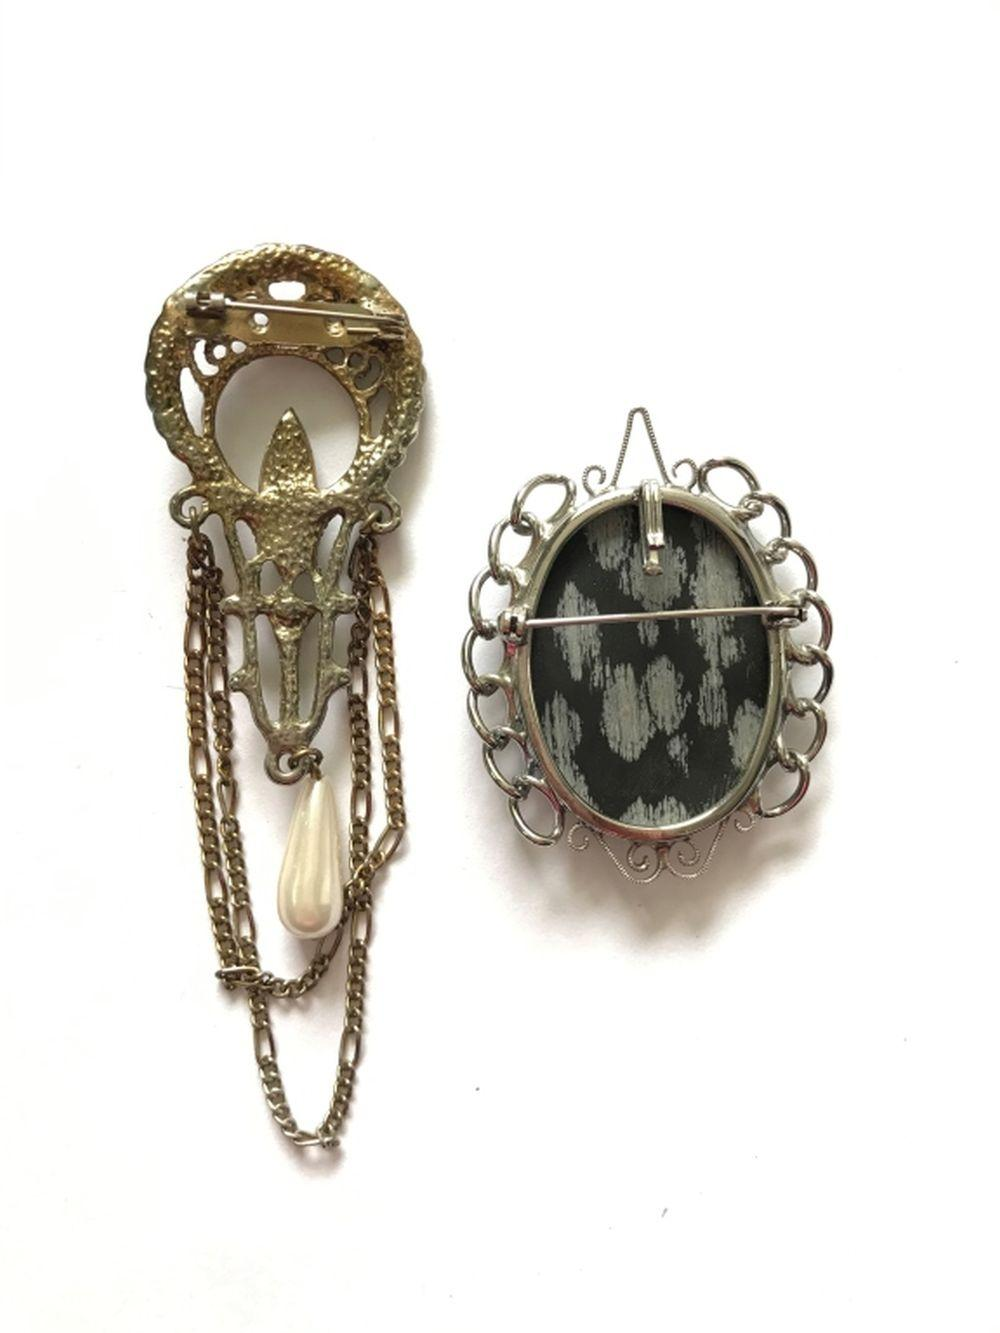 2 BROOCHES (1 DANGLE VINTAGE!)